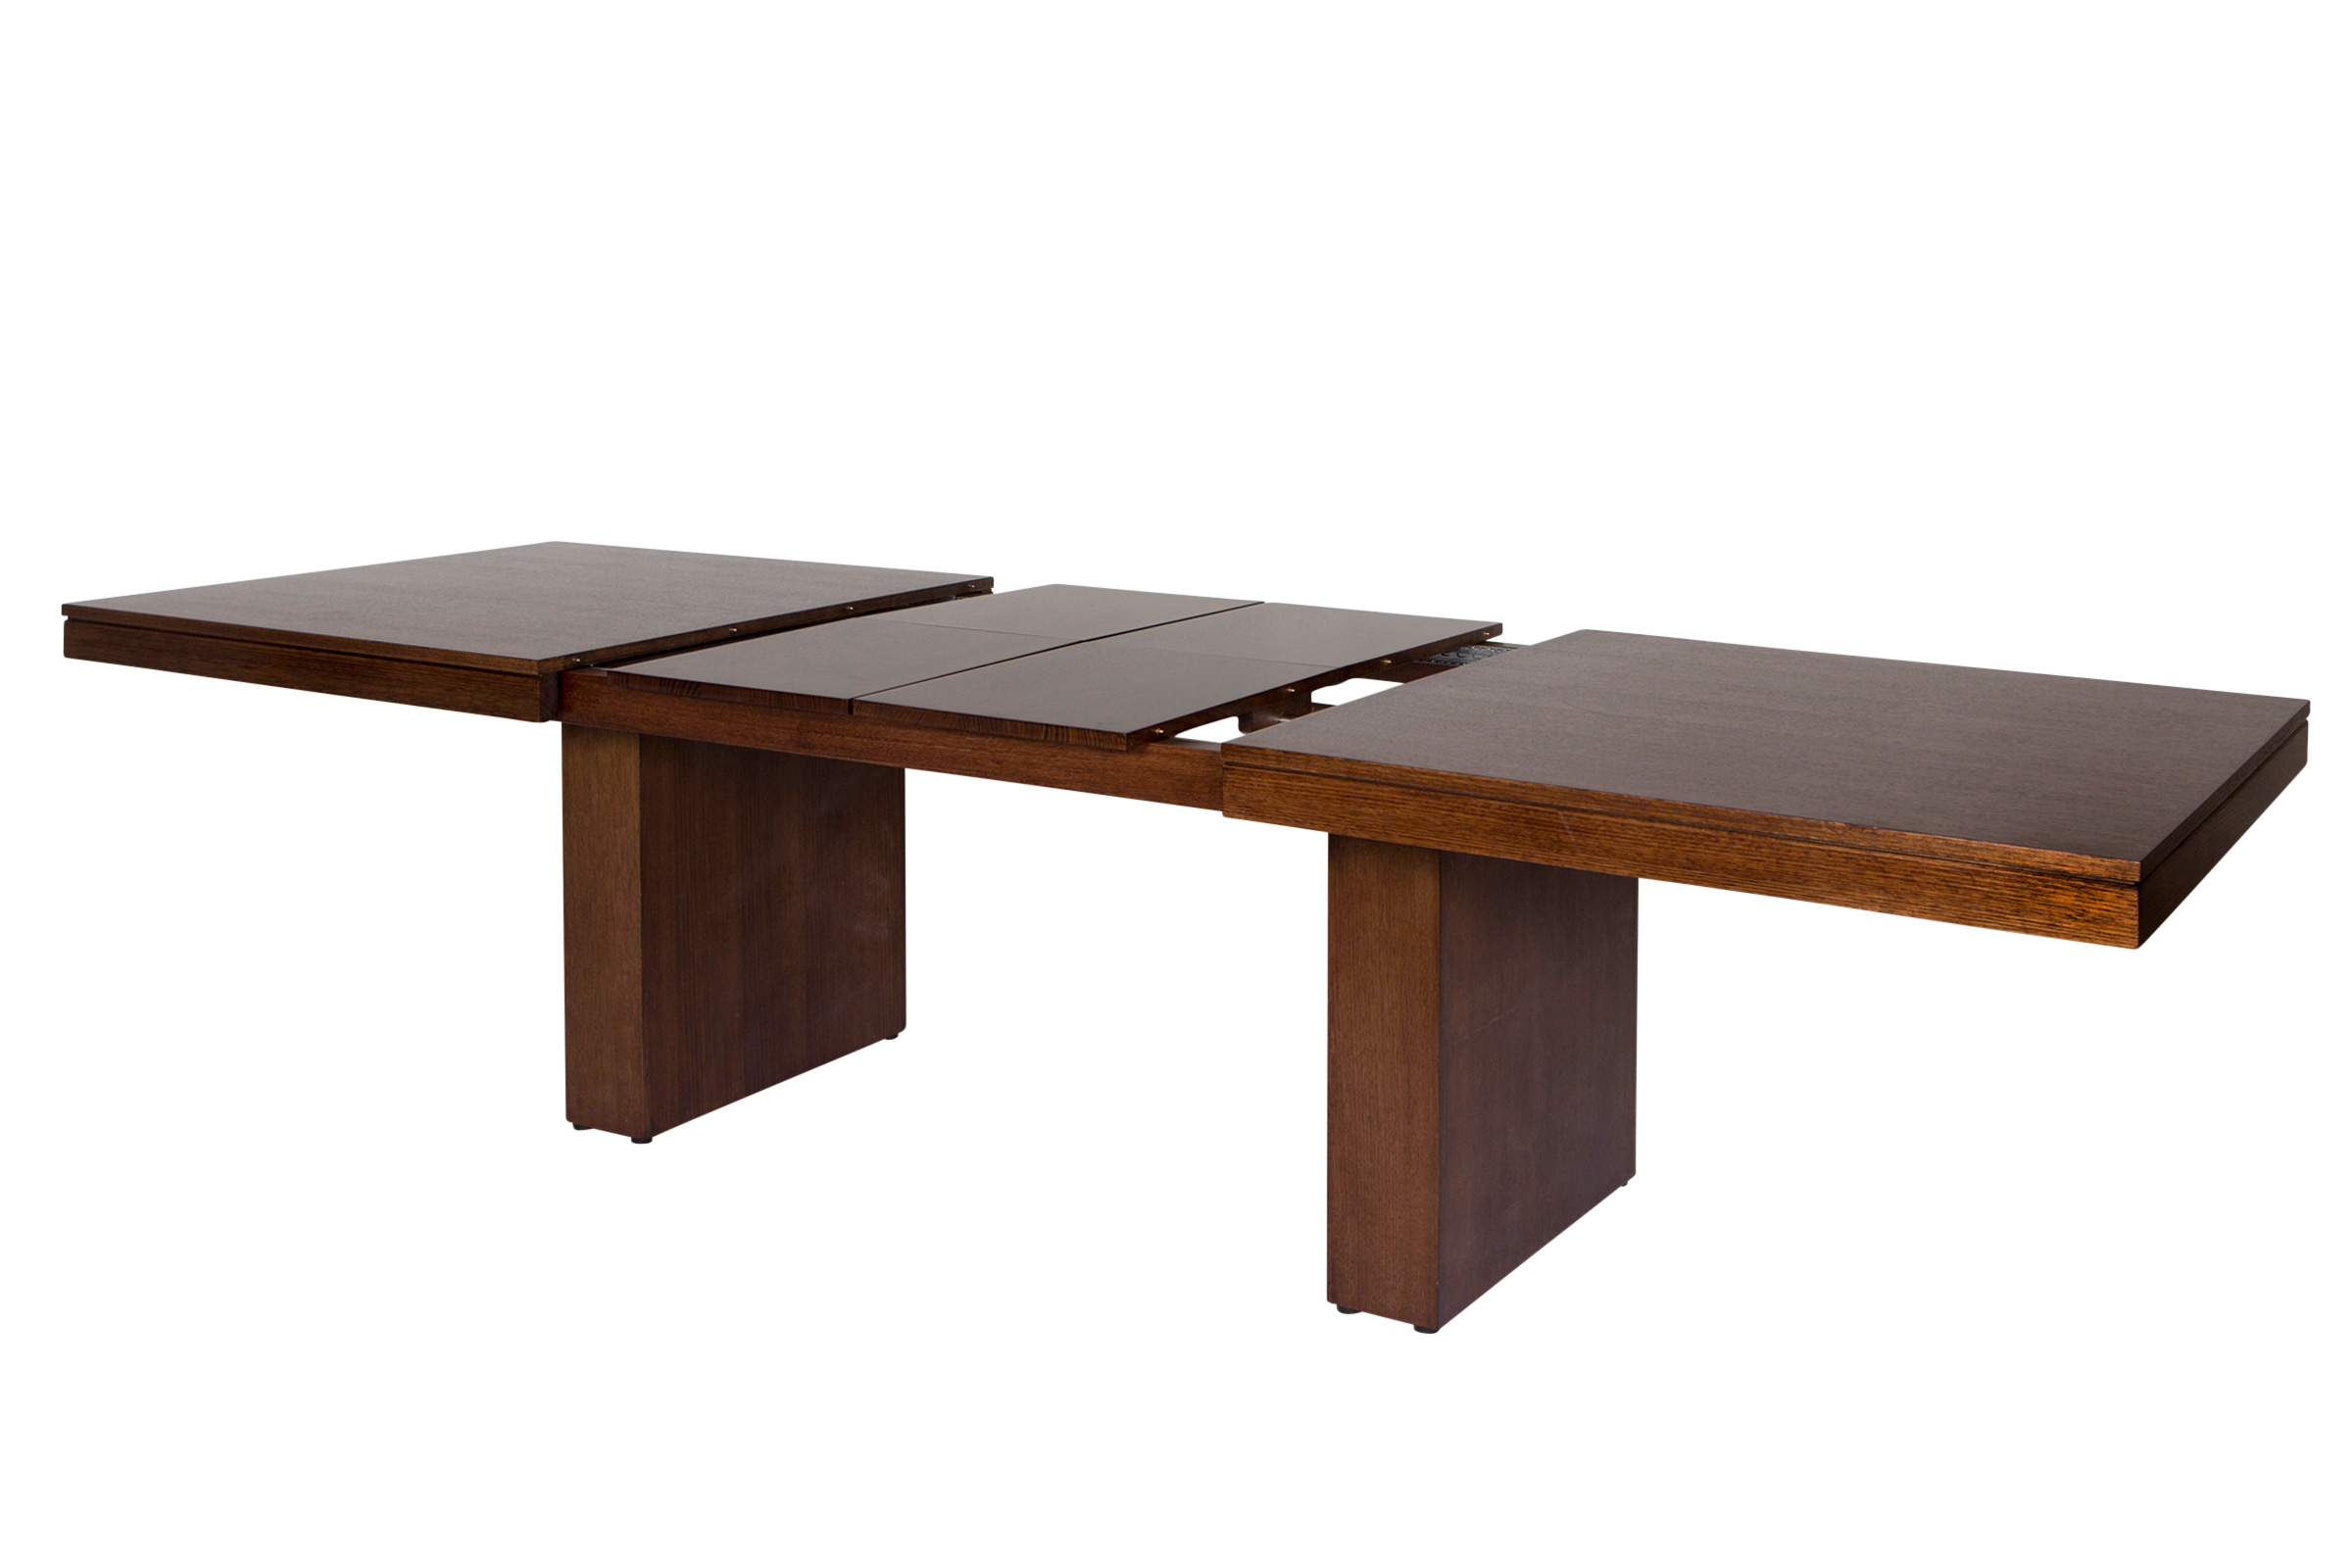 Popular Bravo Extension Dining Table Melbourne (View 20 of 25)